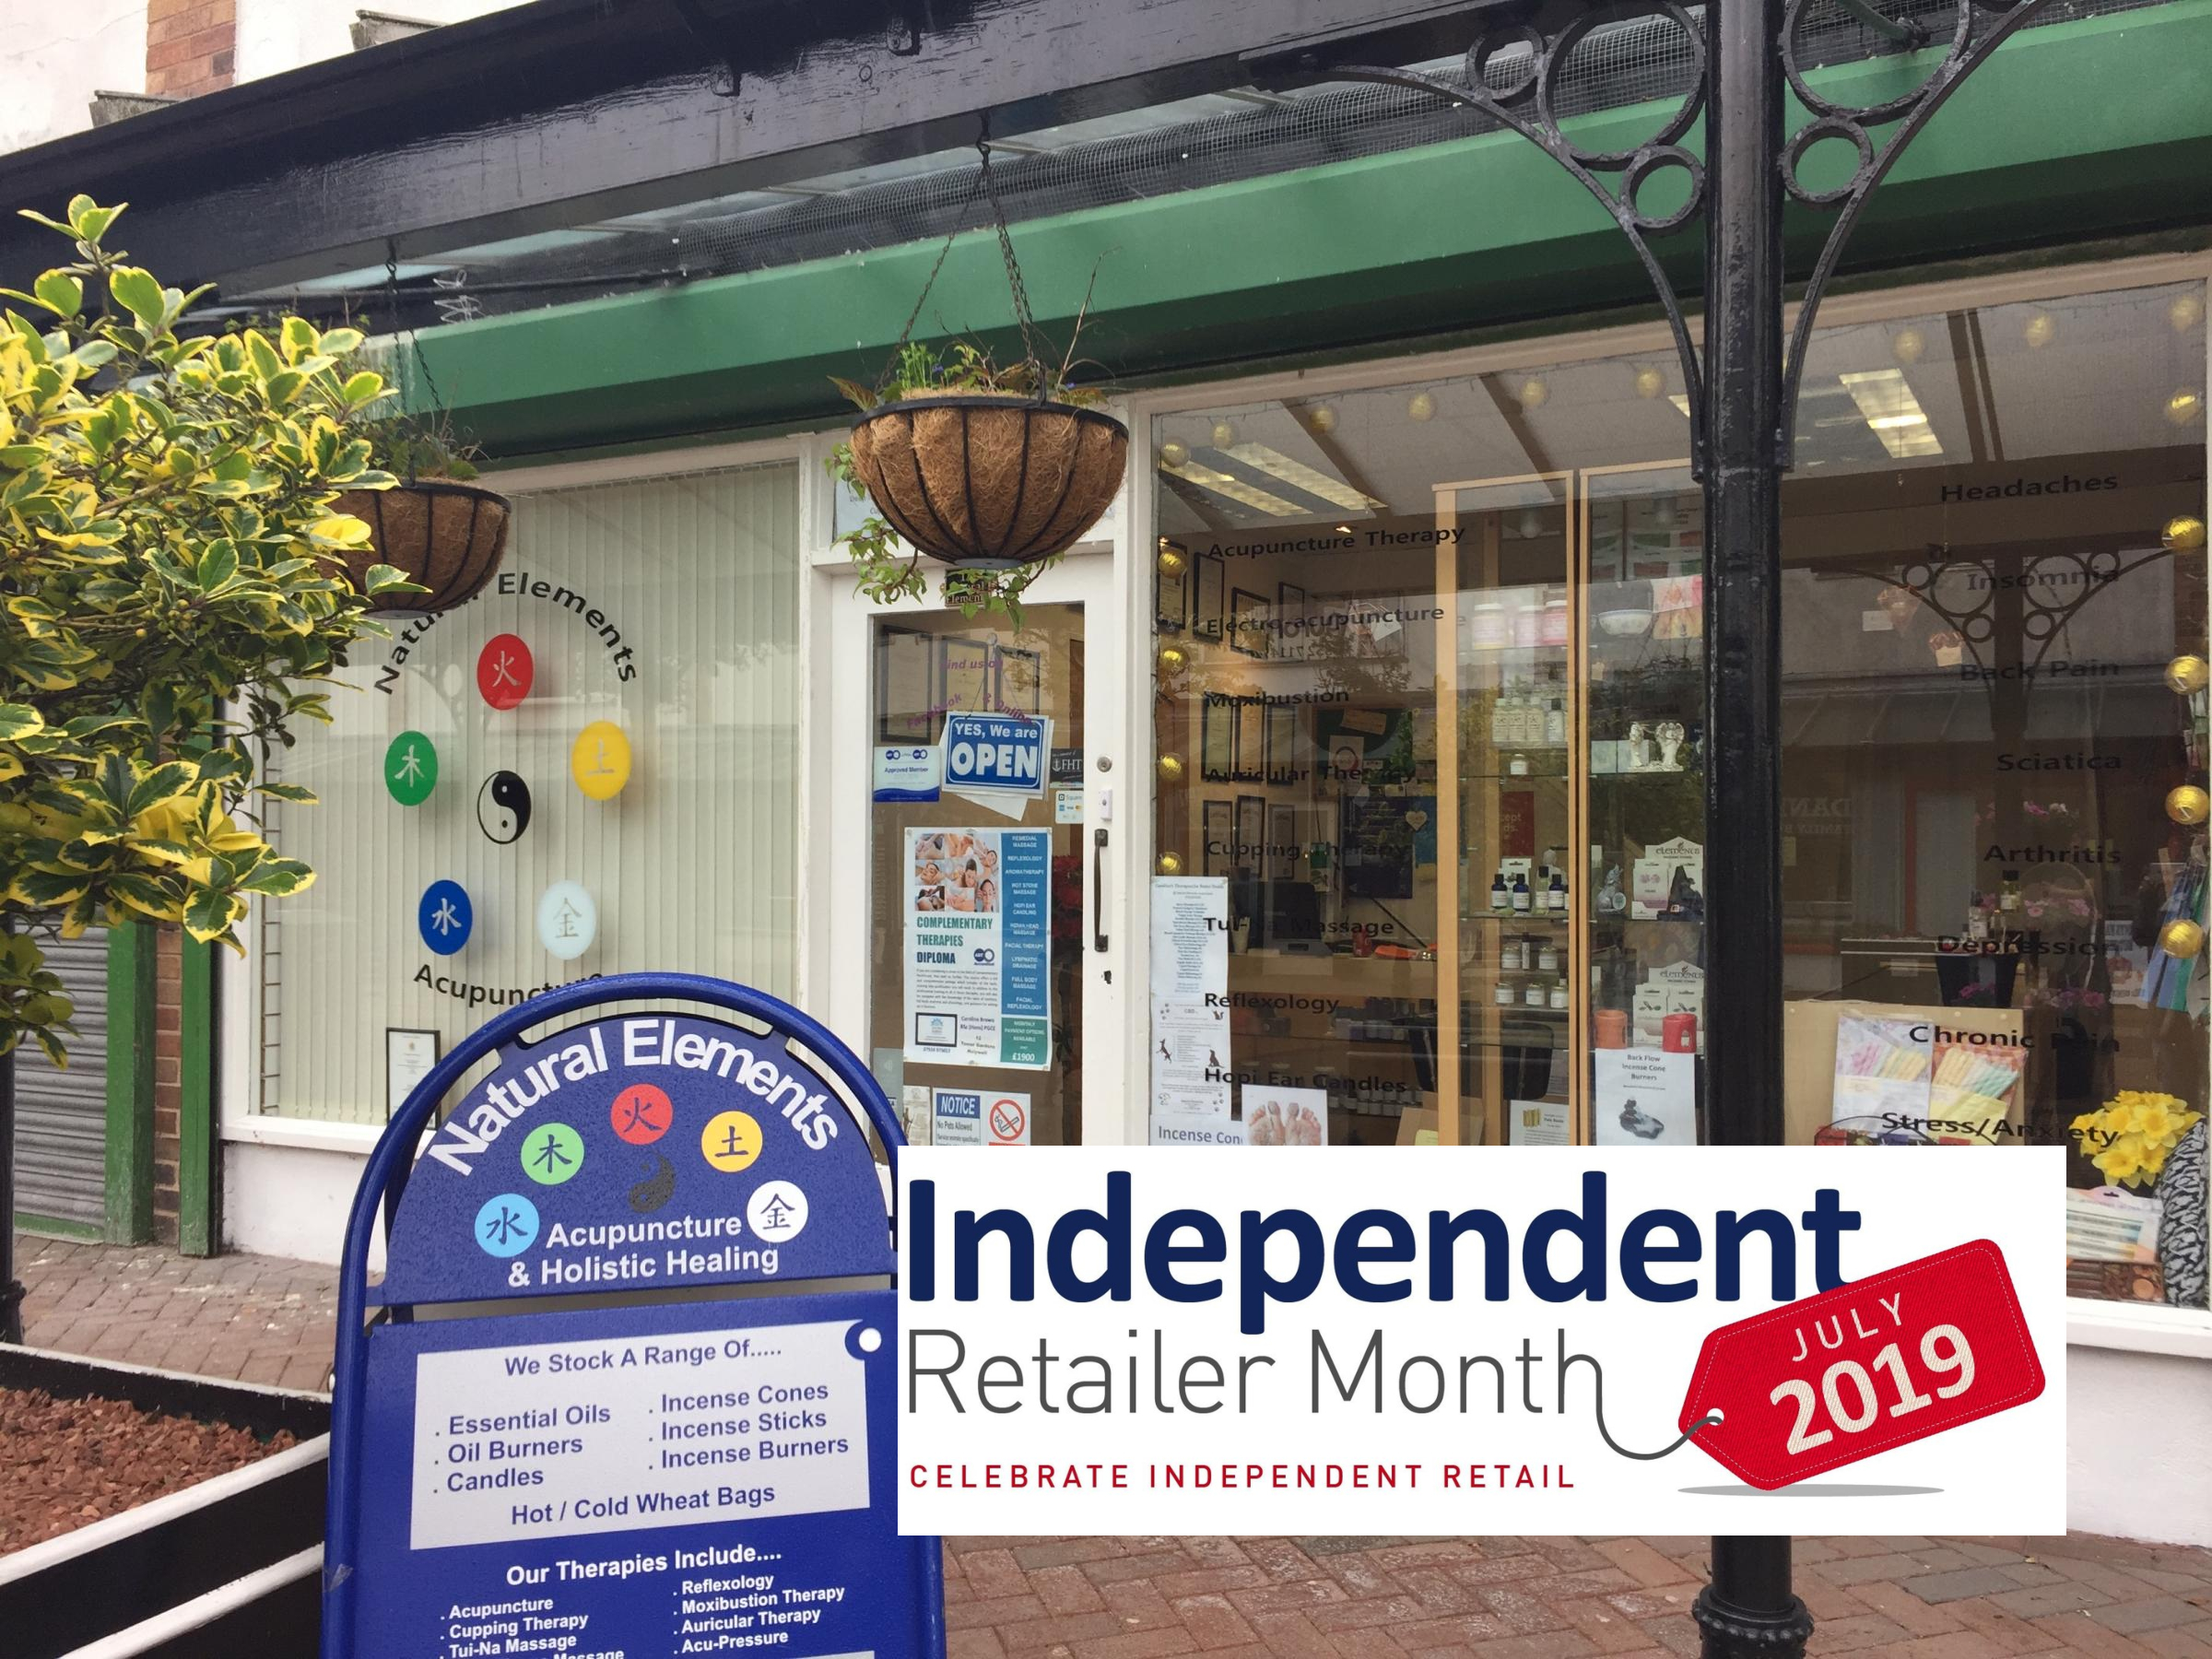 Independent Retailer Month: Q&A with owners of Natural Elements Acupuncture in Holywell